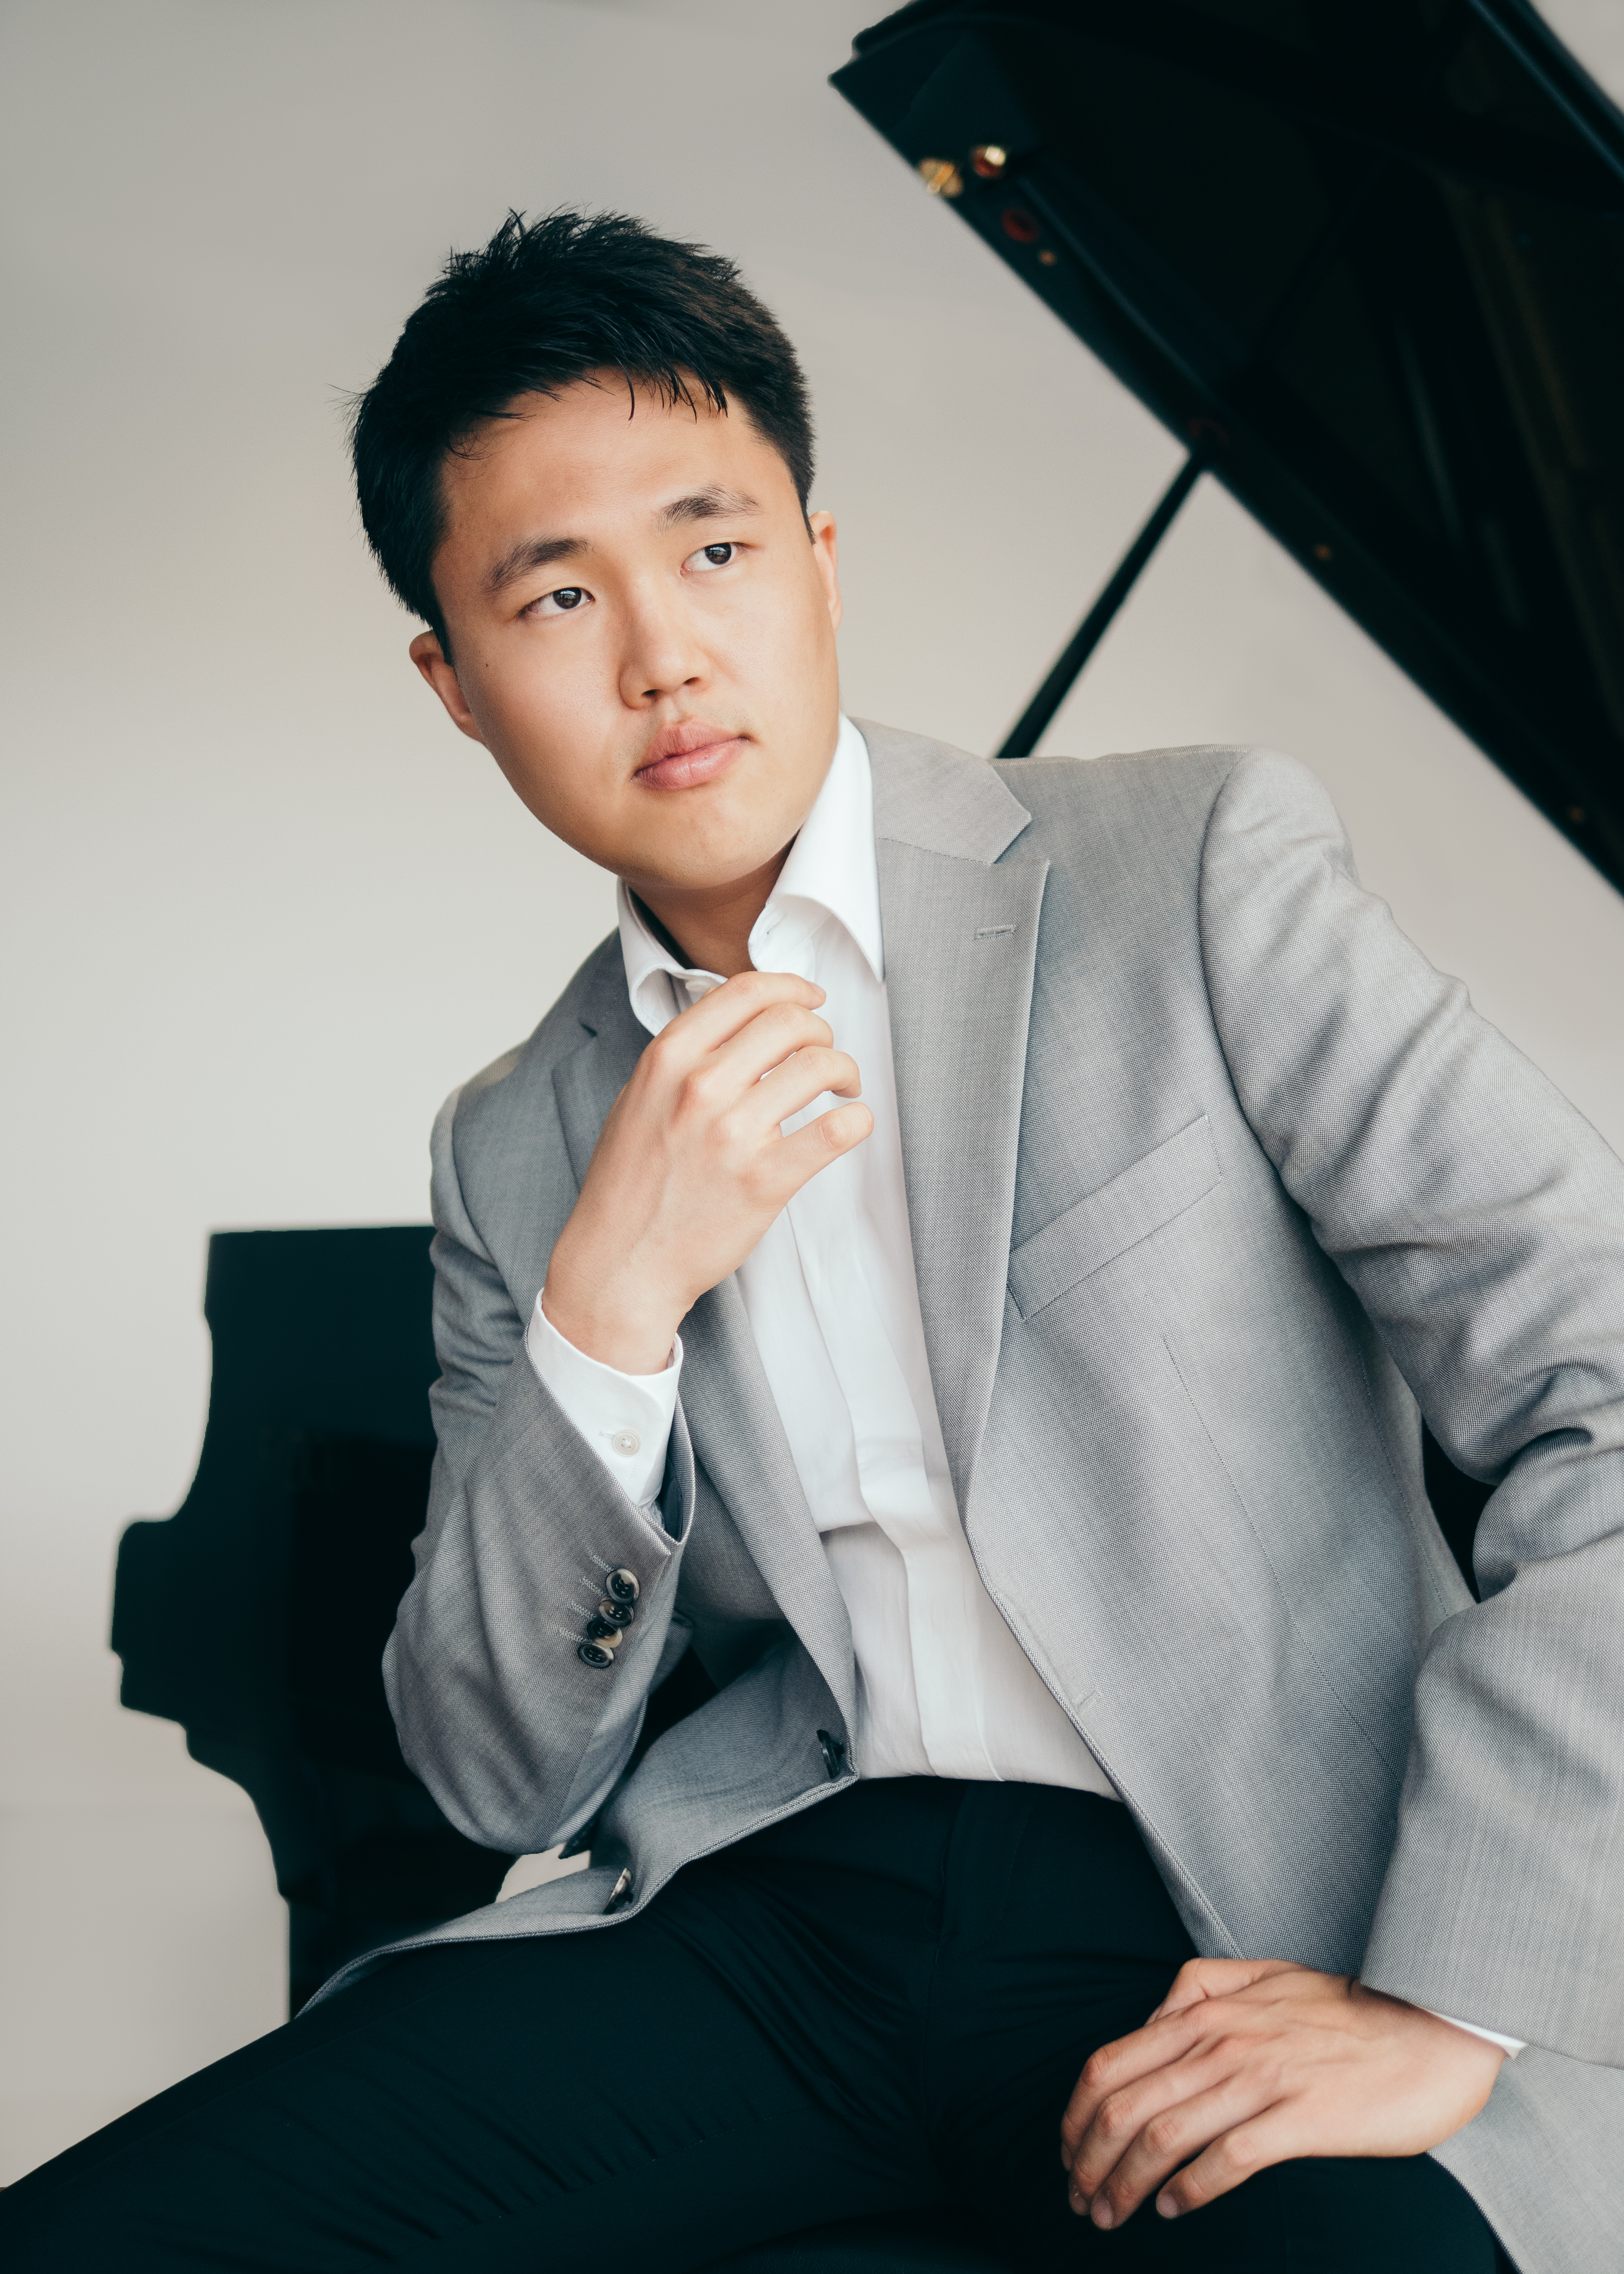 ORLEANS CONCOURS INTERNATIONAL PIANO CONCERT